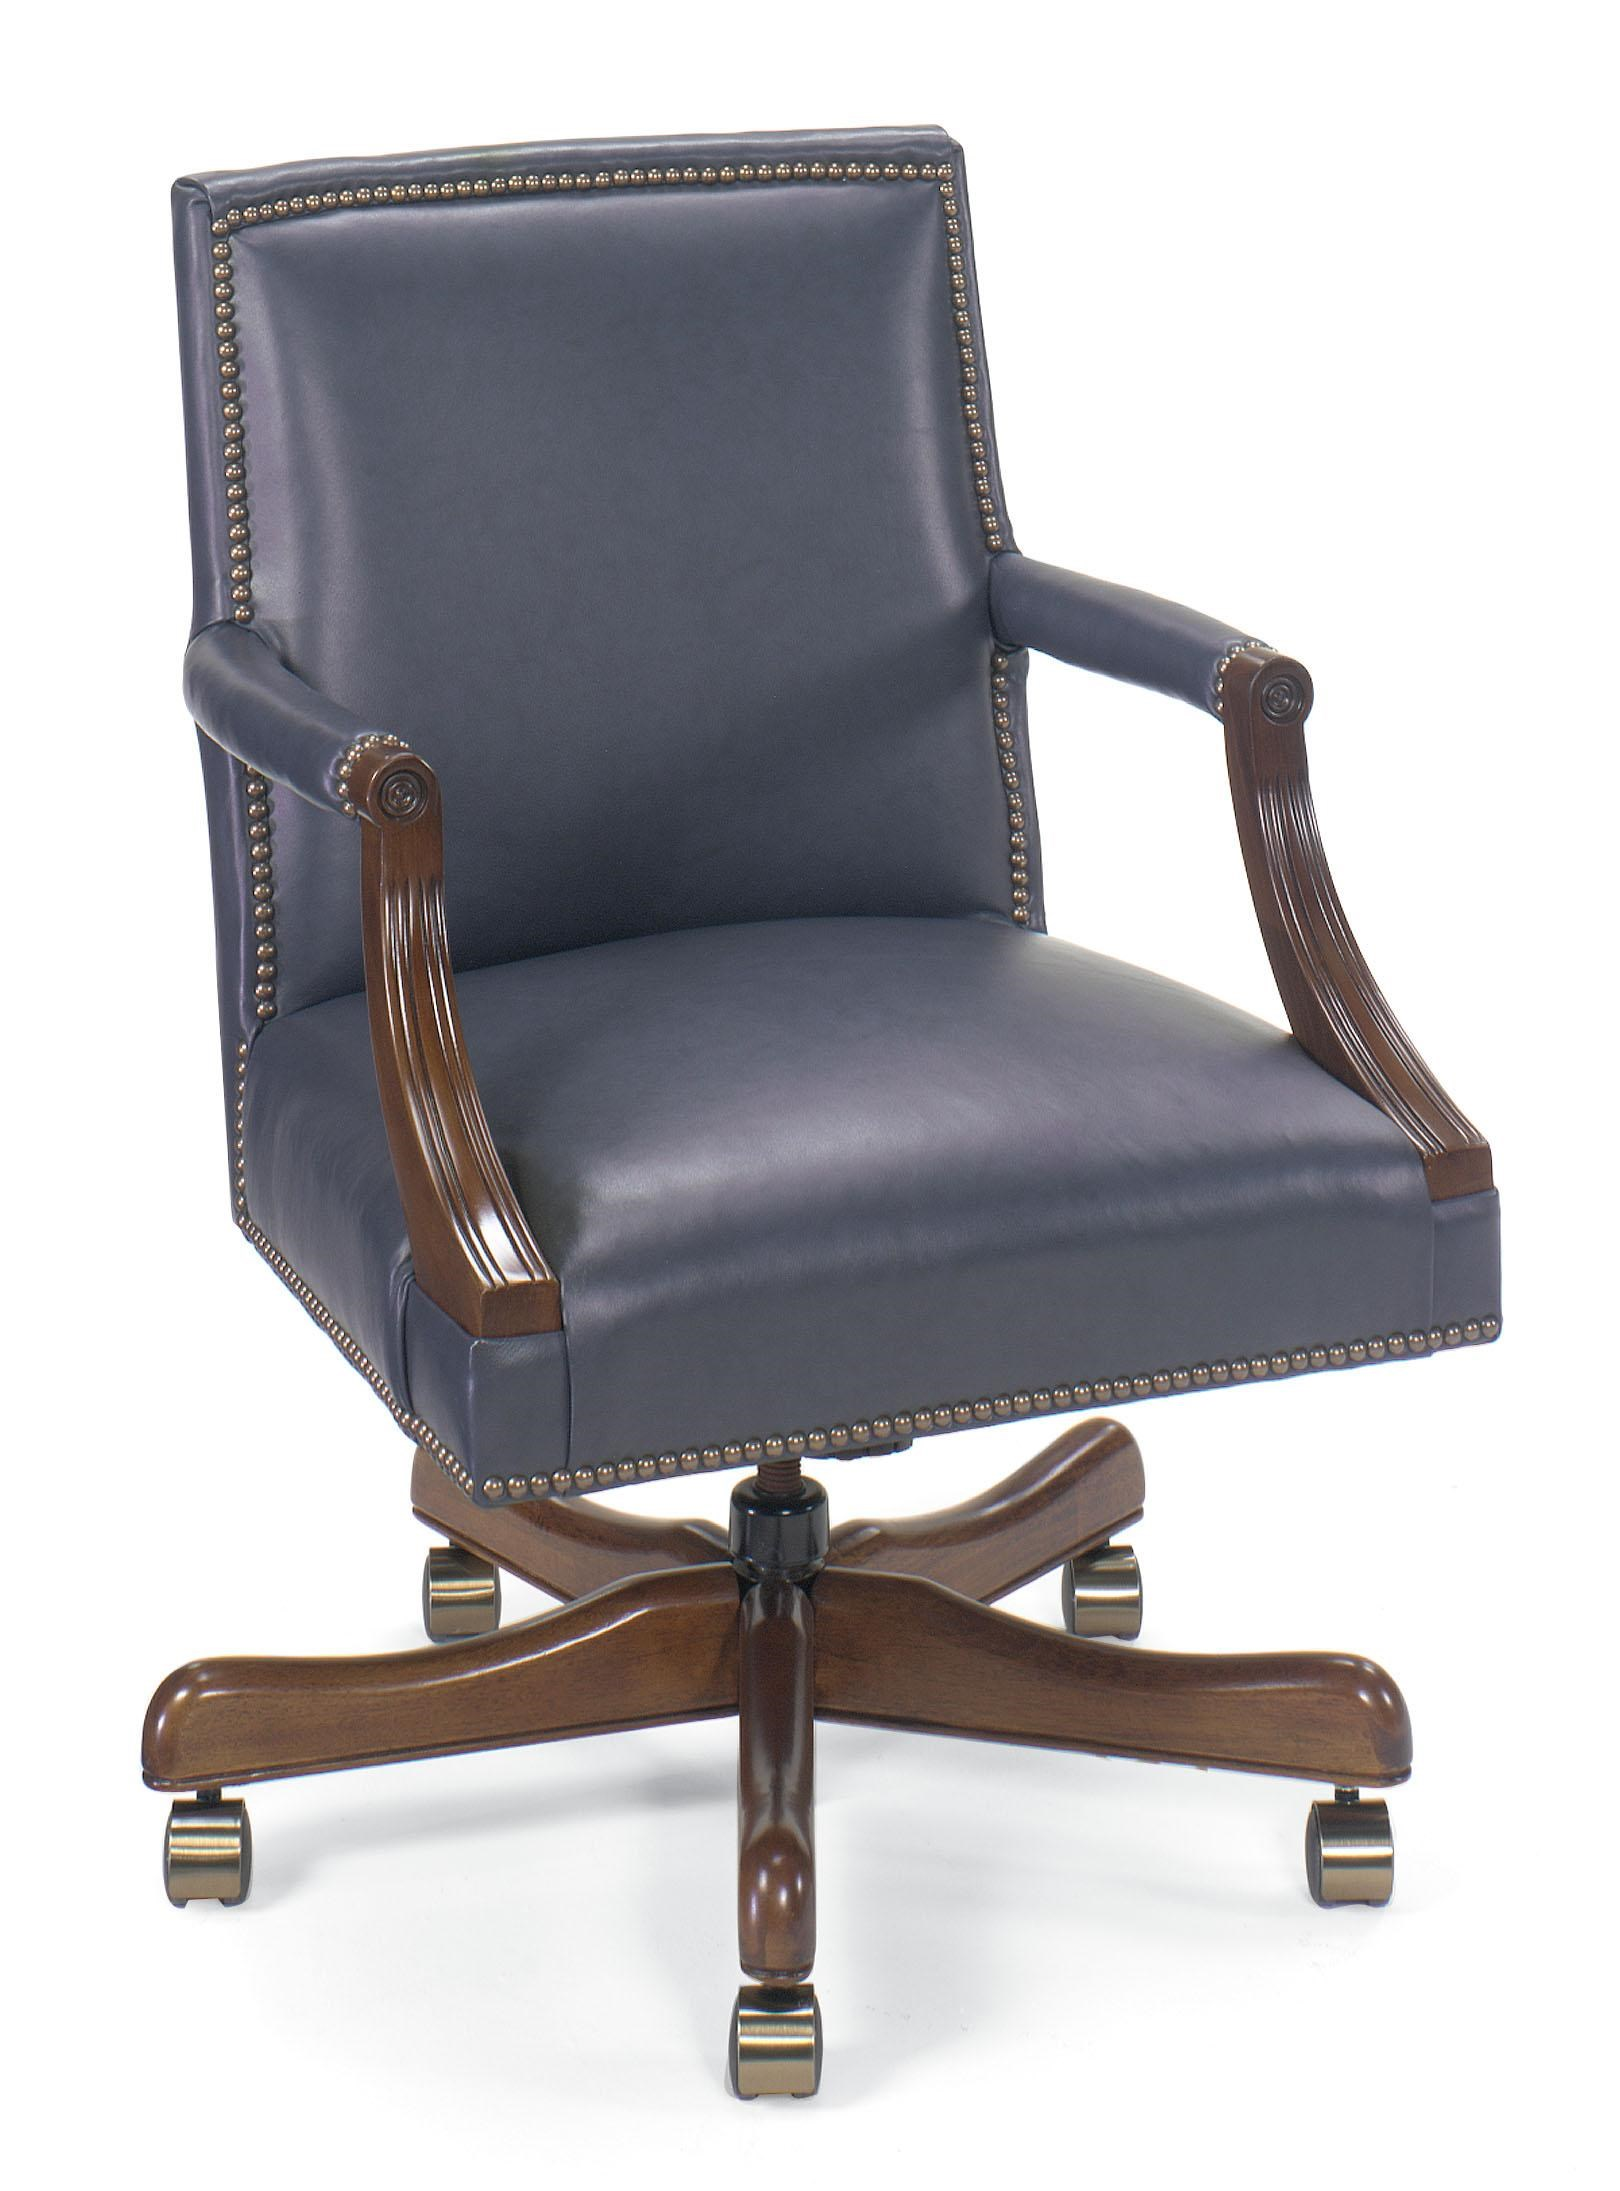 Office Furnishings Leather Executive Swivel Chair With Nailhead Trim By  Fairfield